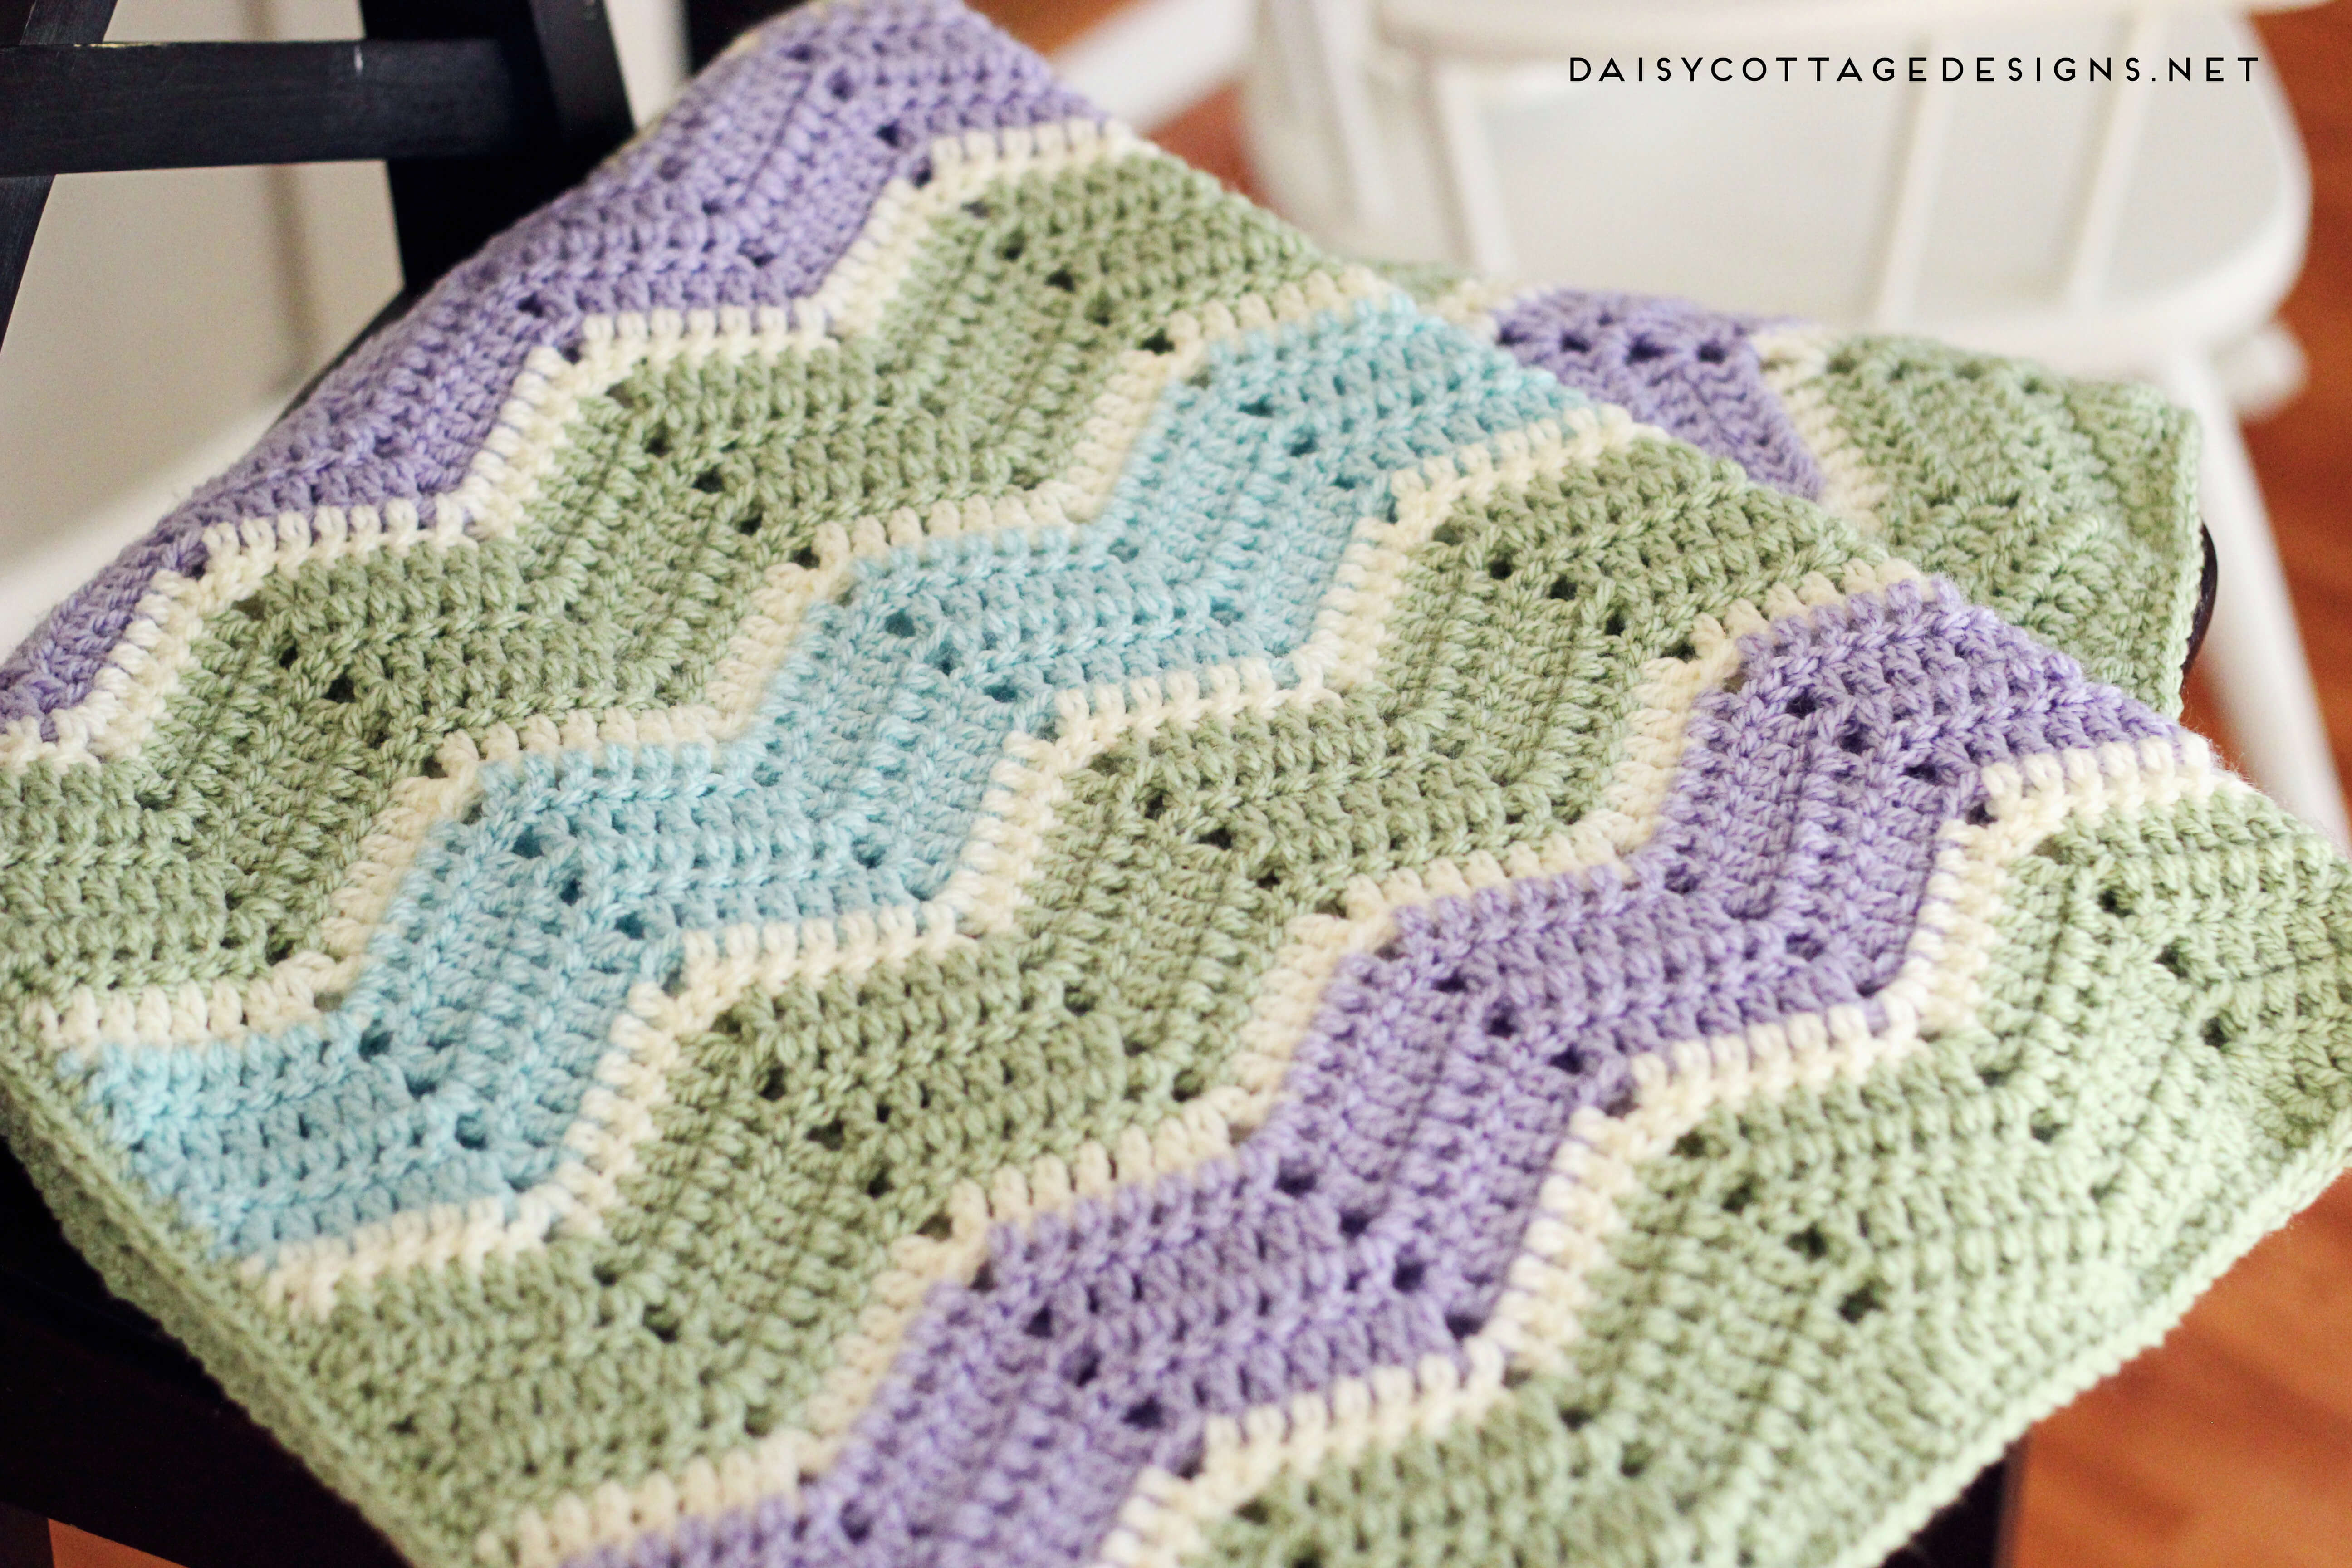 Crochet Throws Patterns Inspirational Ripple Blanket Crochet Pattern Daisy Cottage Designs Of Wonderful 44 Images Crochet Throws Patterns